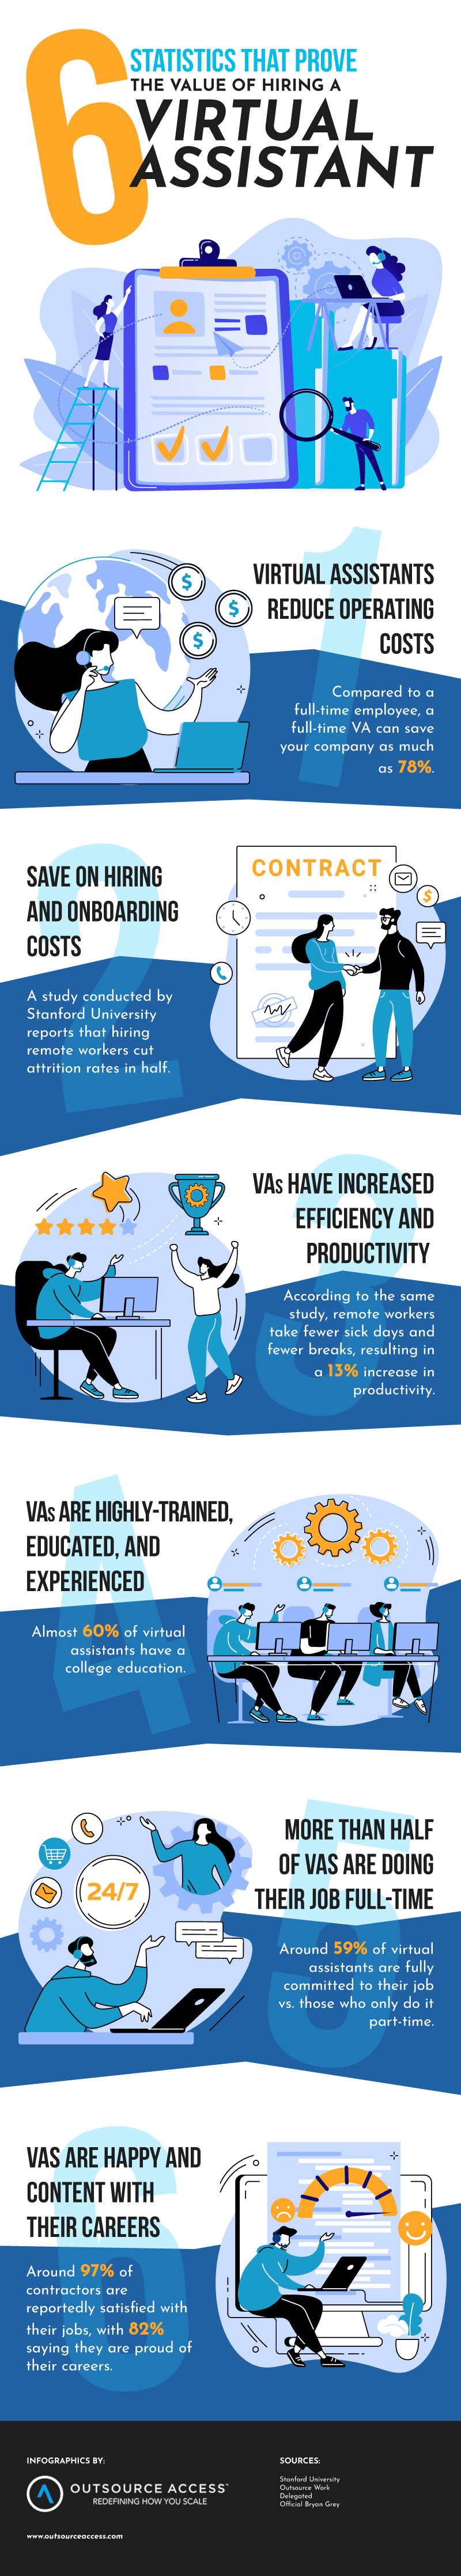 6 Statistics that Prove the Value of Hiring a Virtual Assistant - Infographic